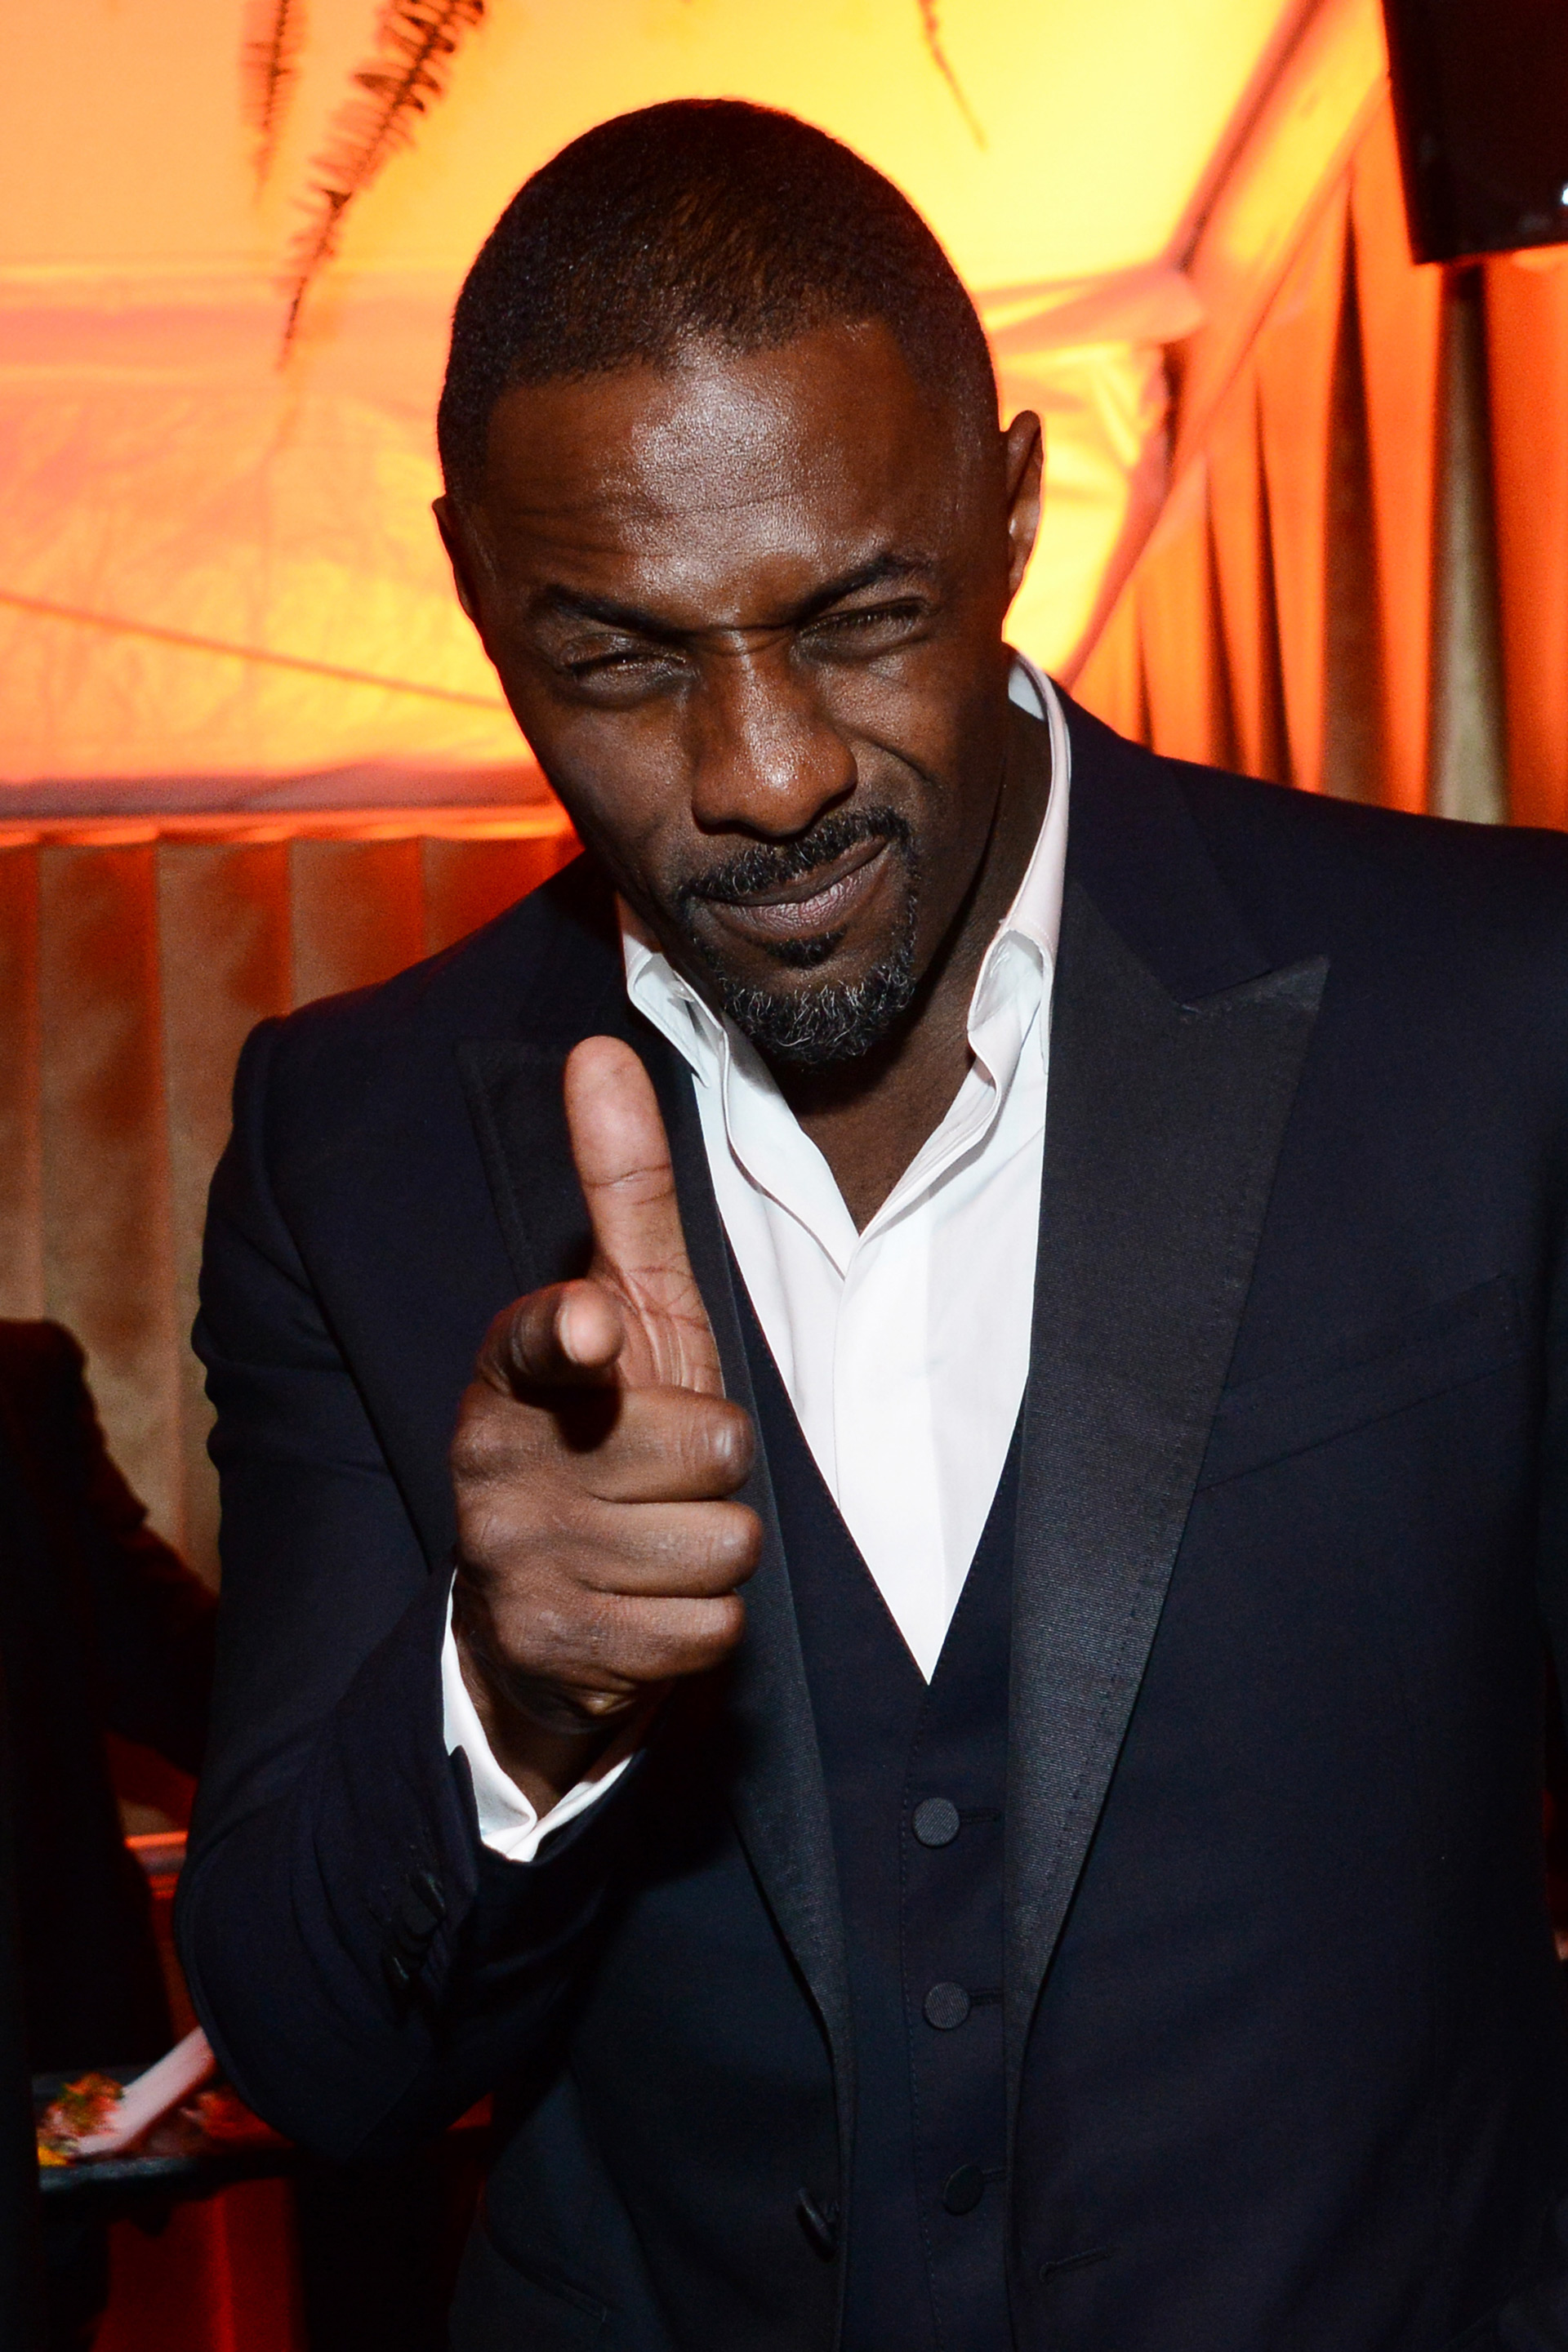 Idris elba pointing | Sheknows.com